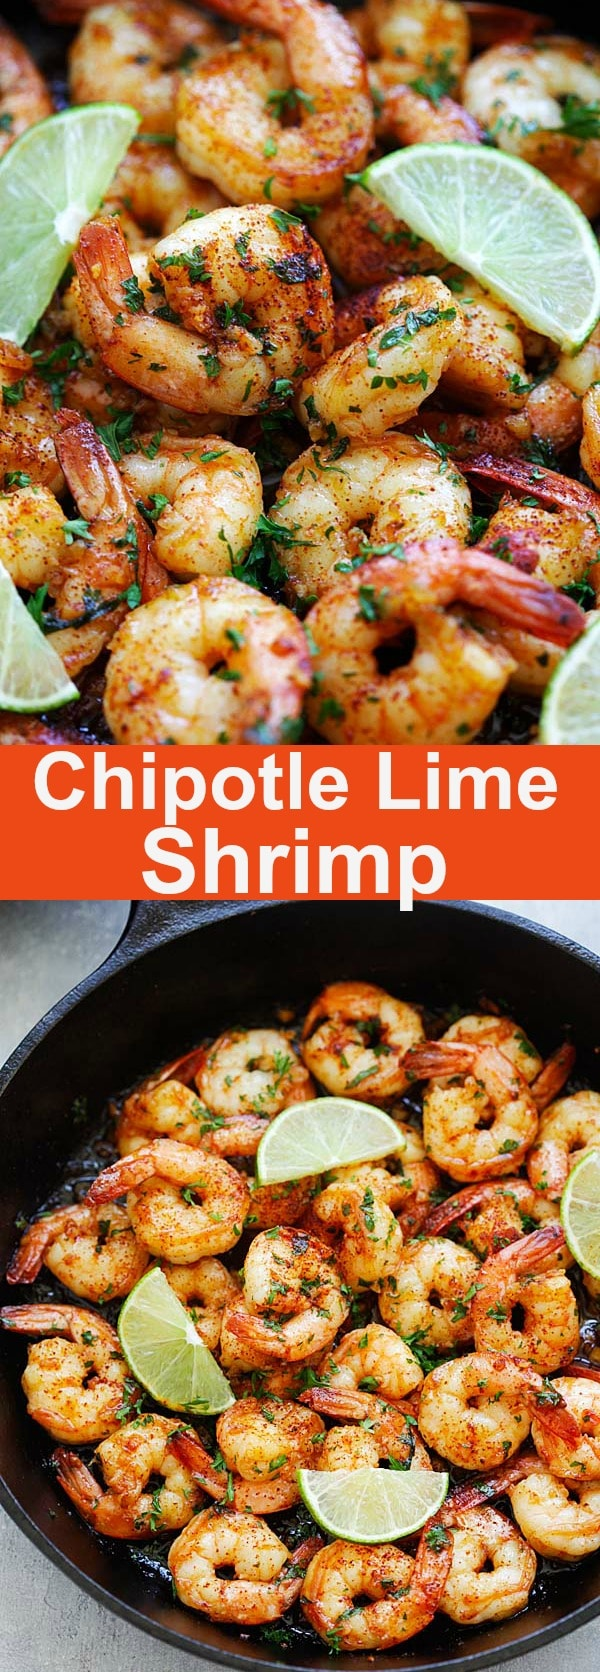 Chipotle Lime Shrimp | Easy Delicious Recipes